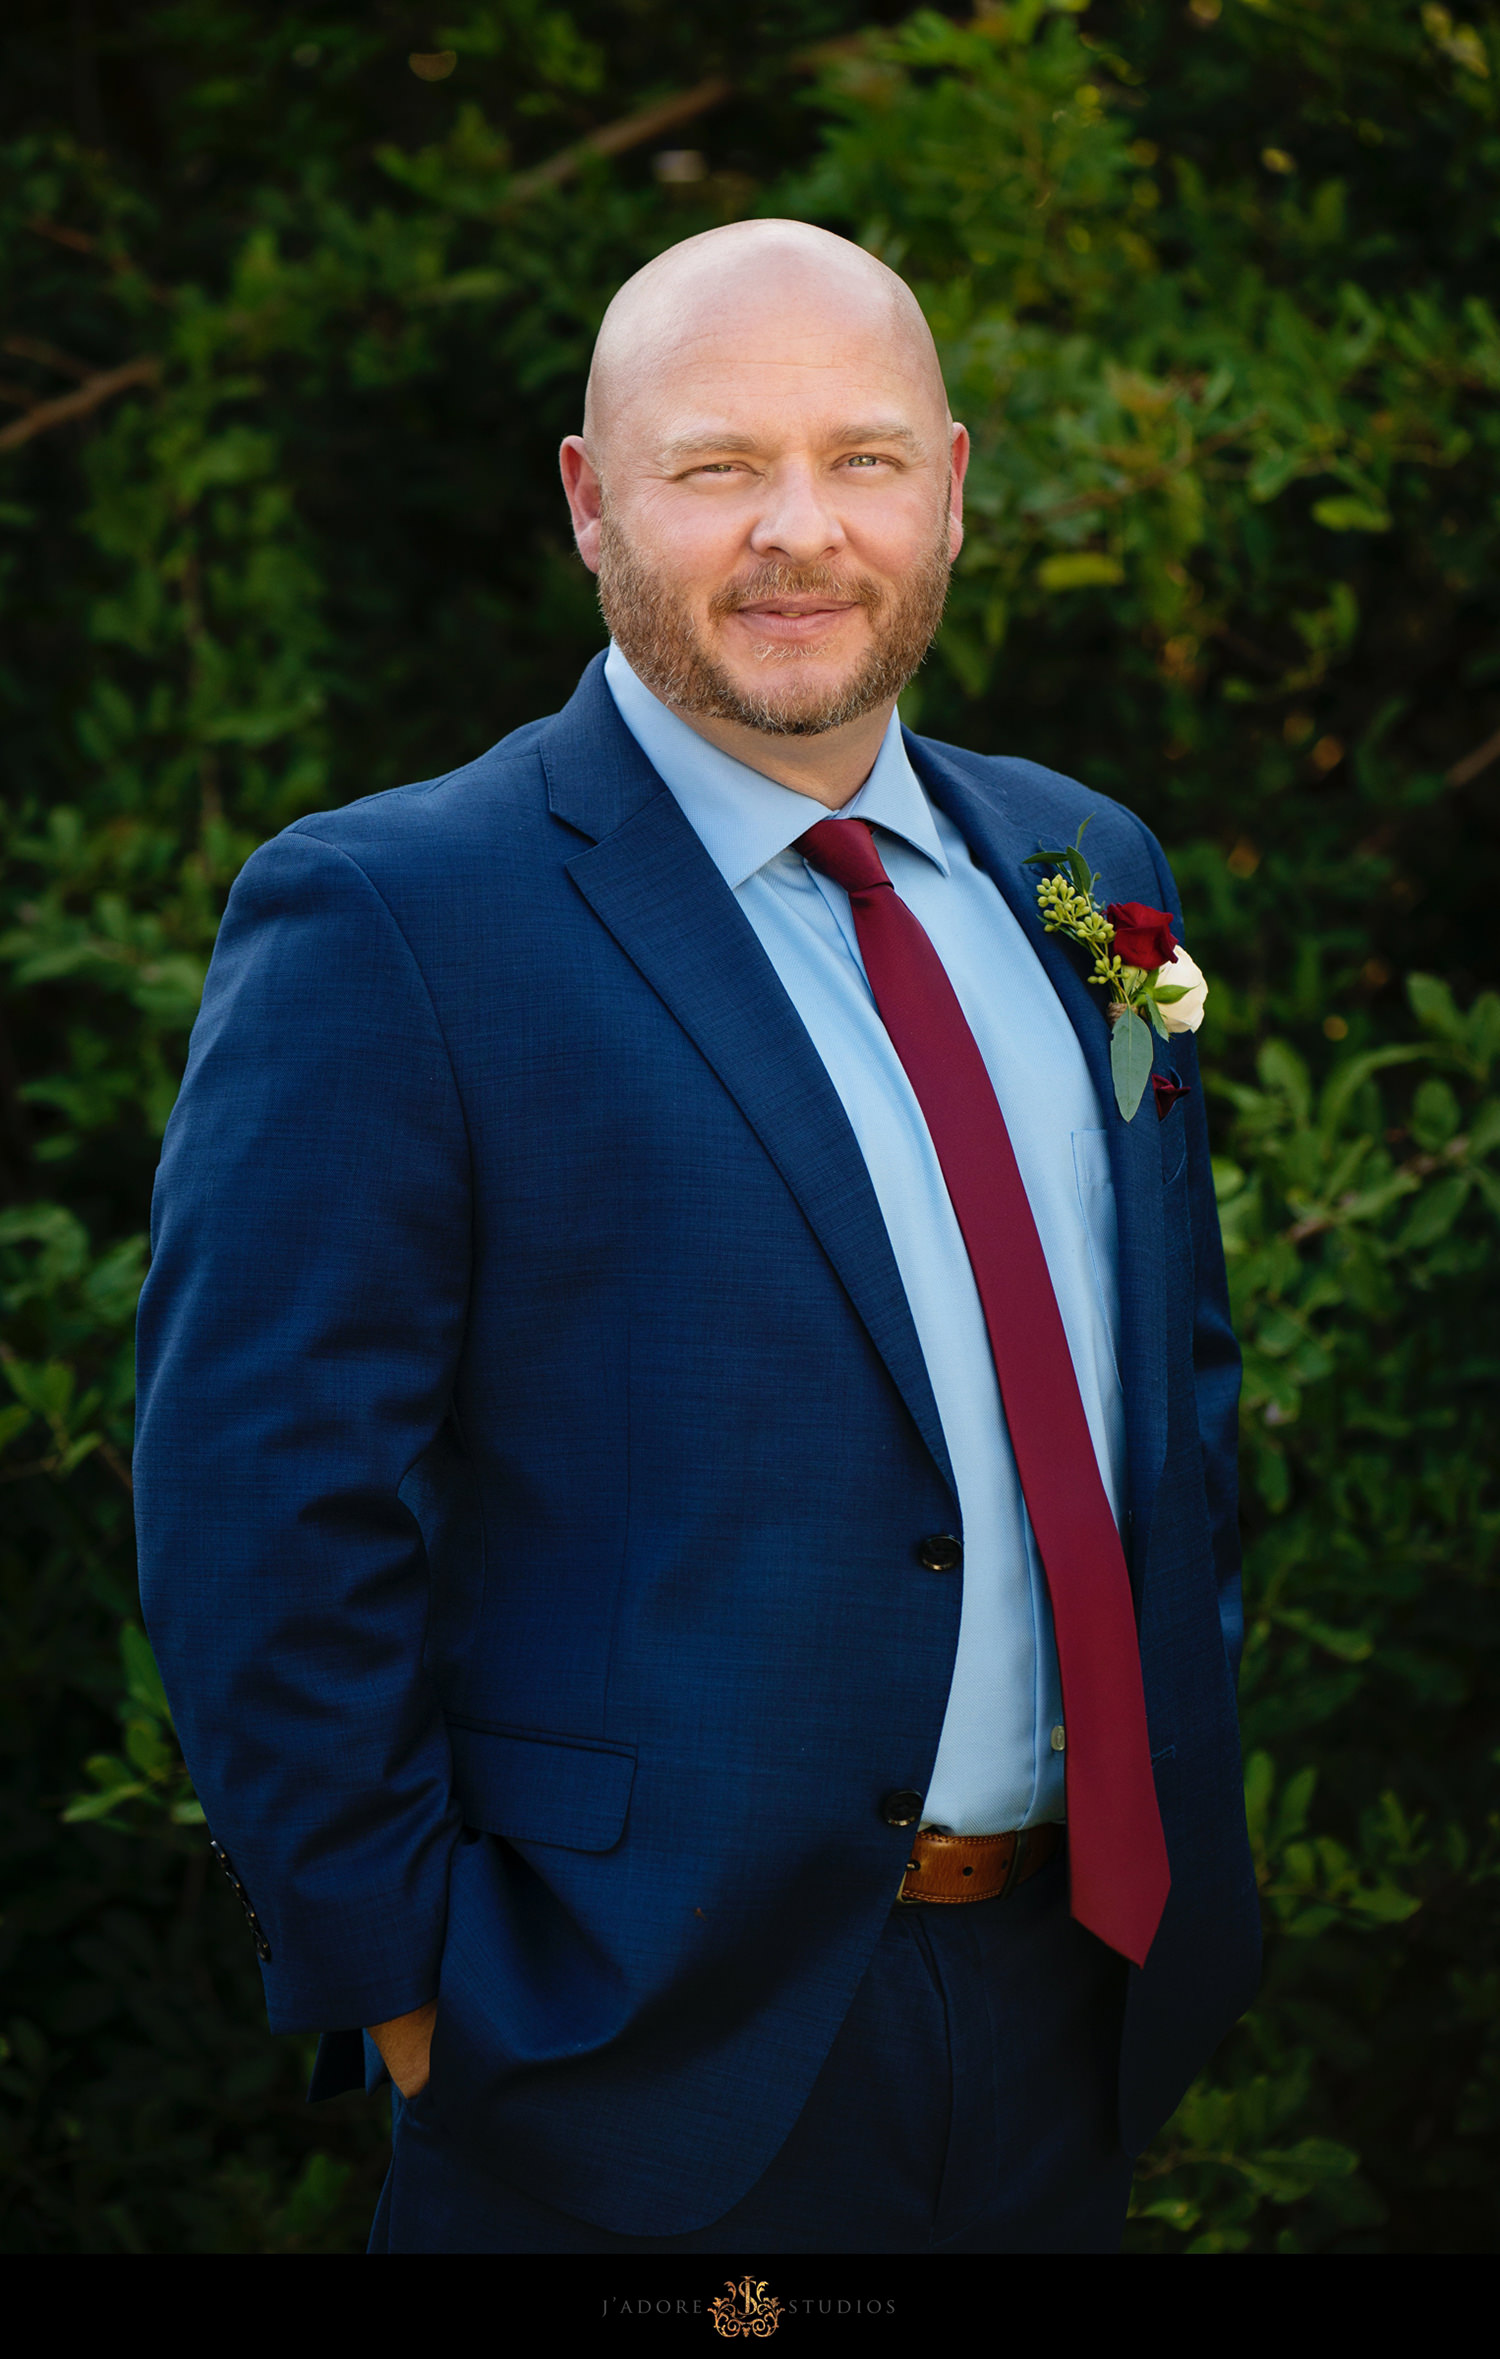 Groom portait in a navy blue suit